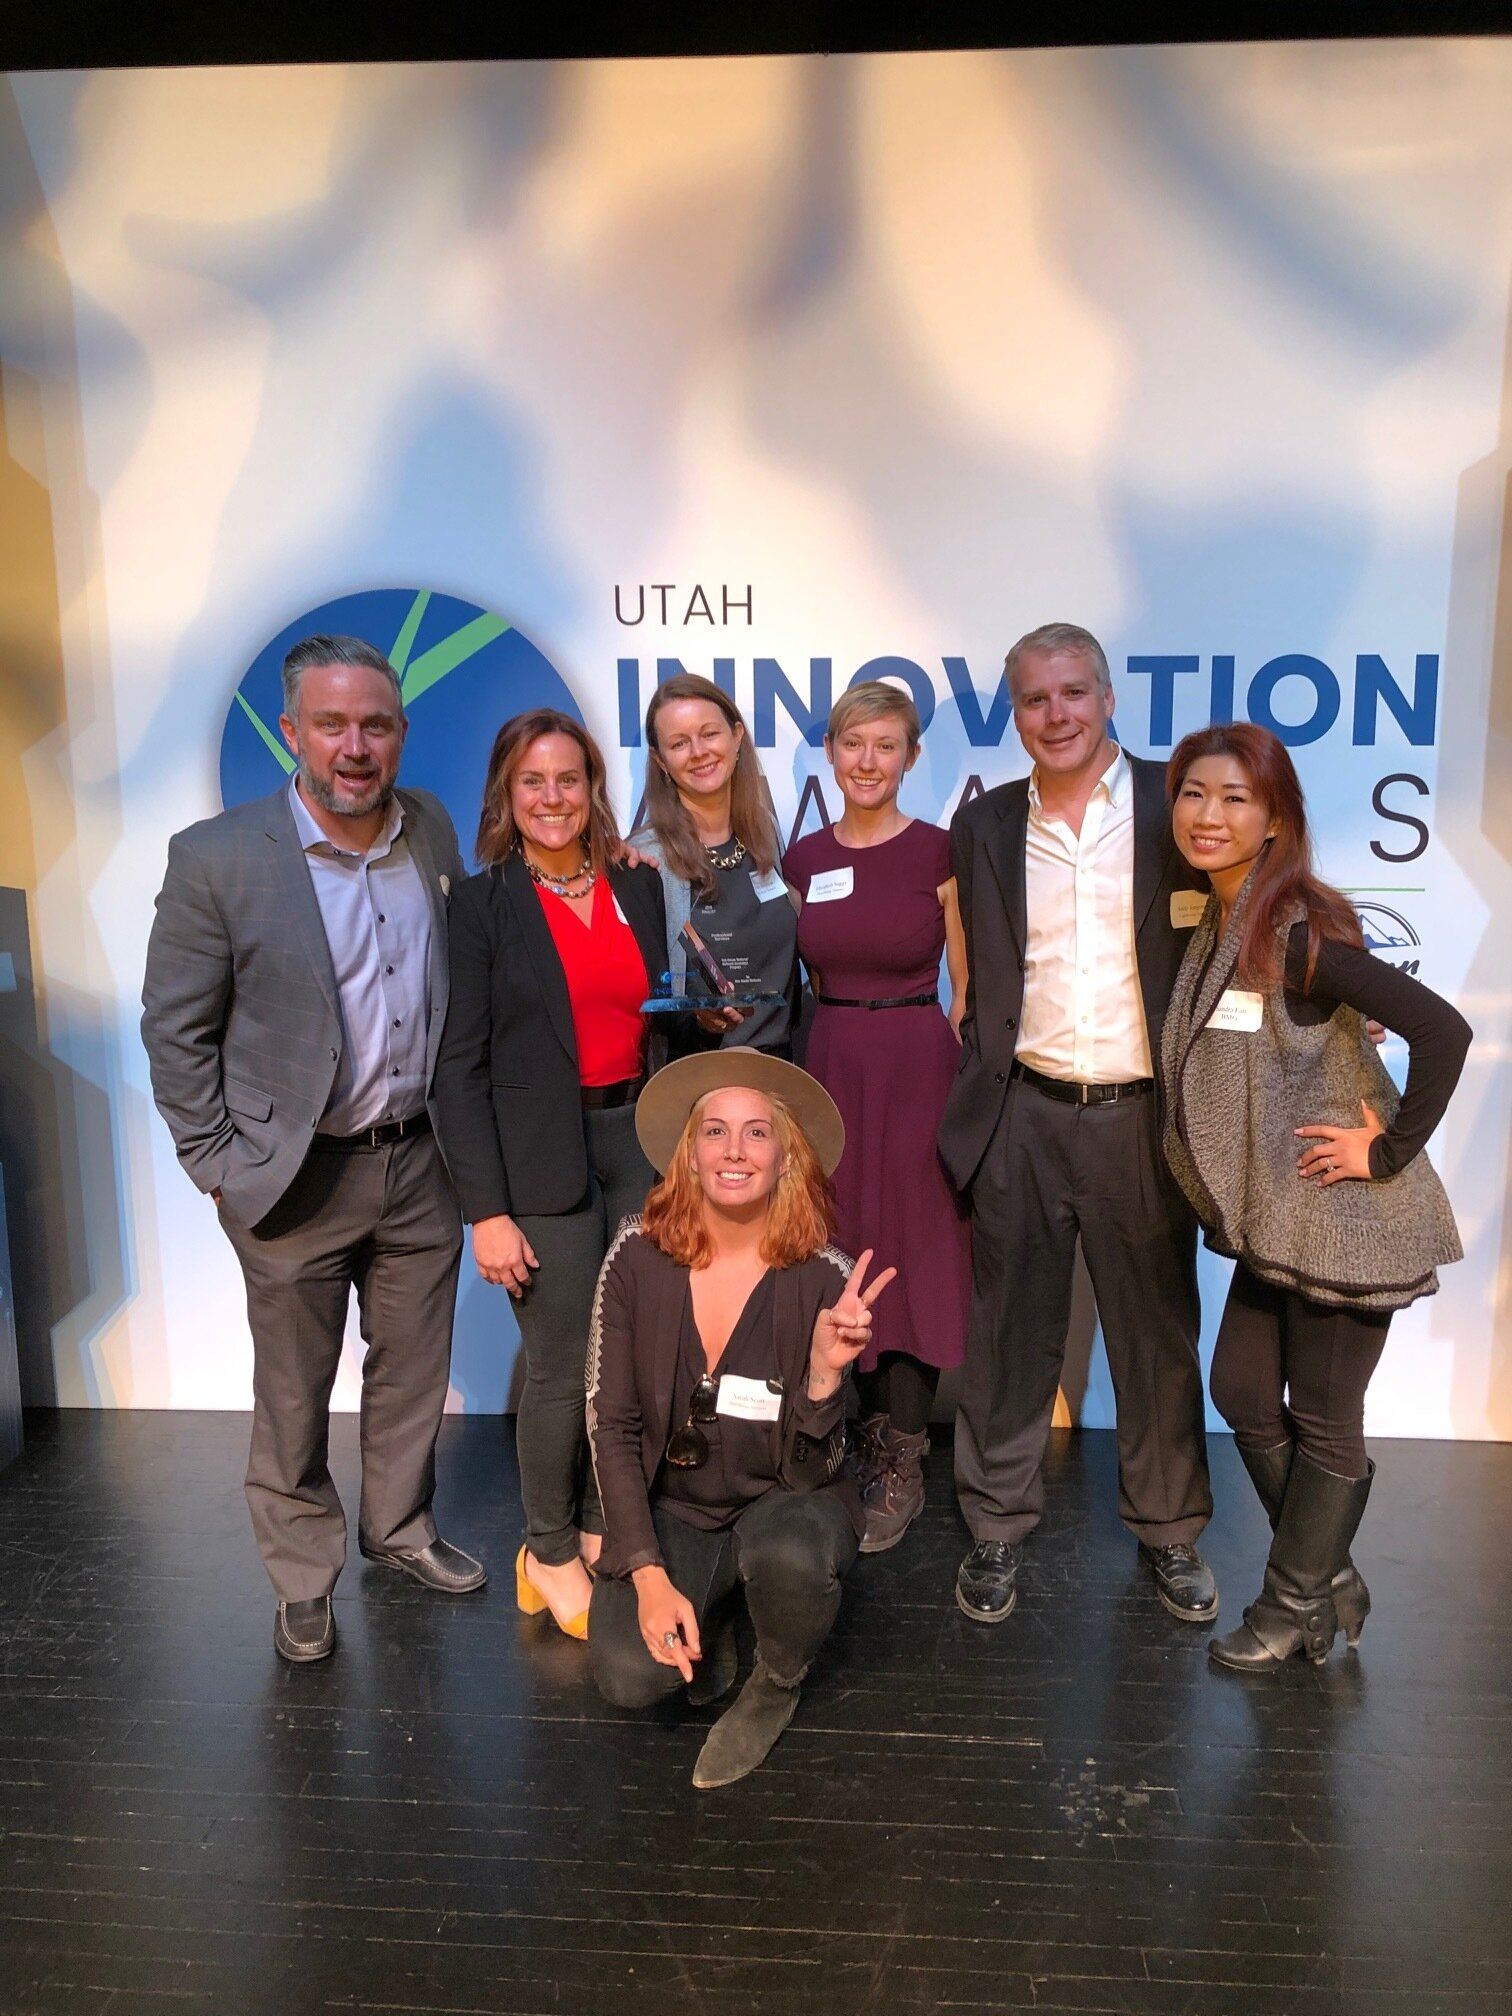 Utah Innovation Award   2019 Finalist   Celebrate with us!